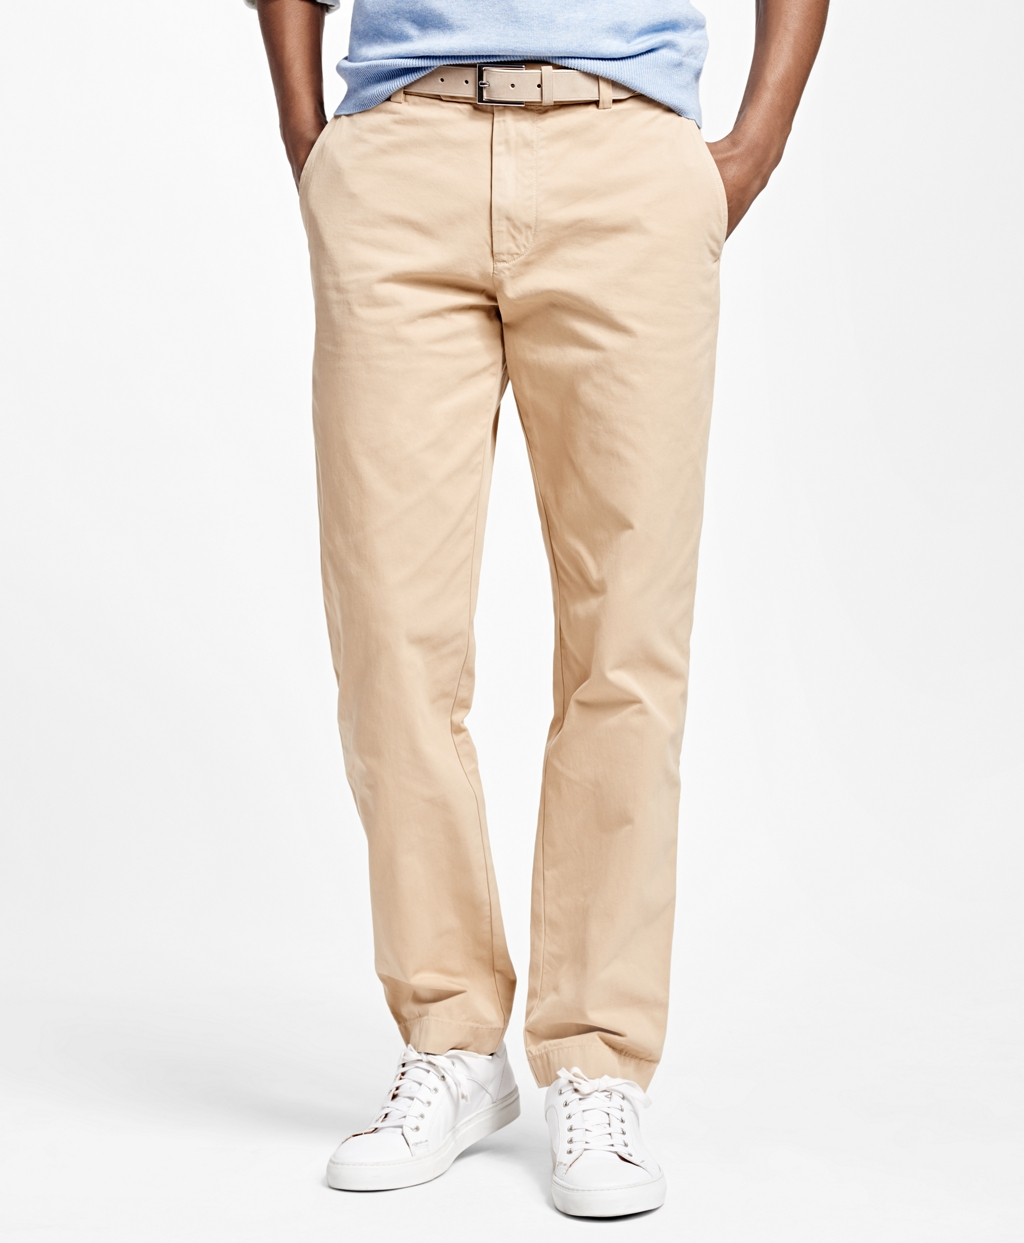 Milano Fit Garment-Dyed Chinos, $98.50